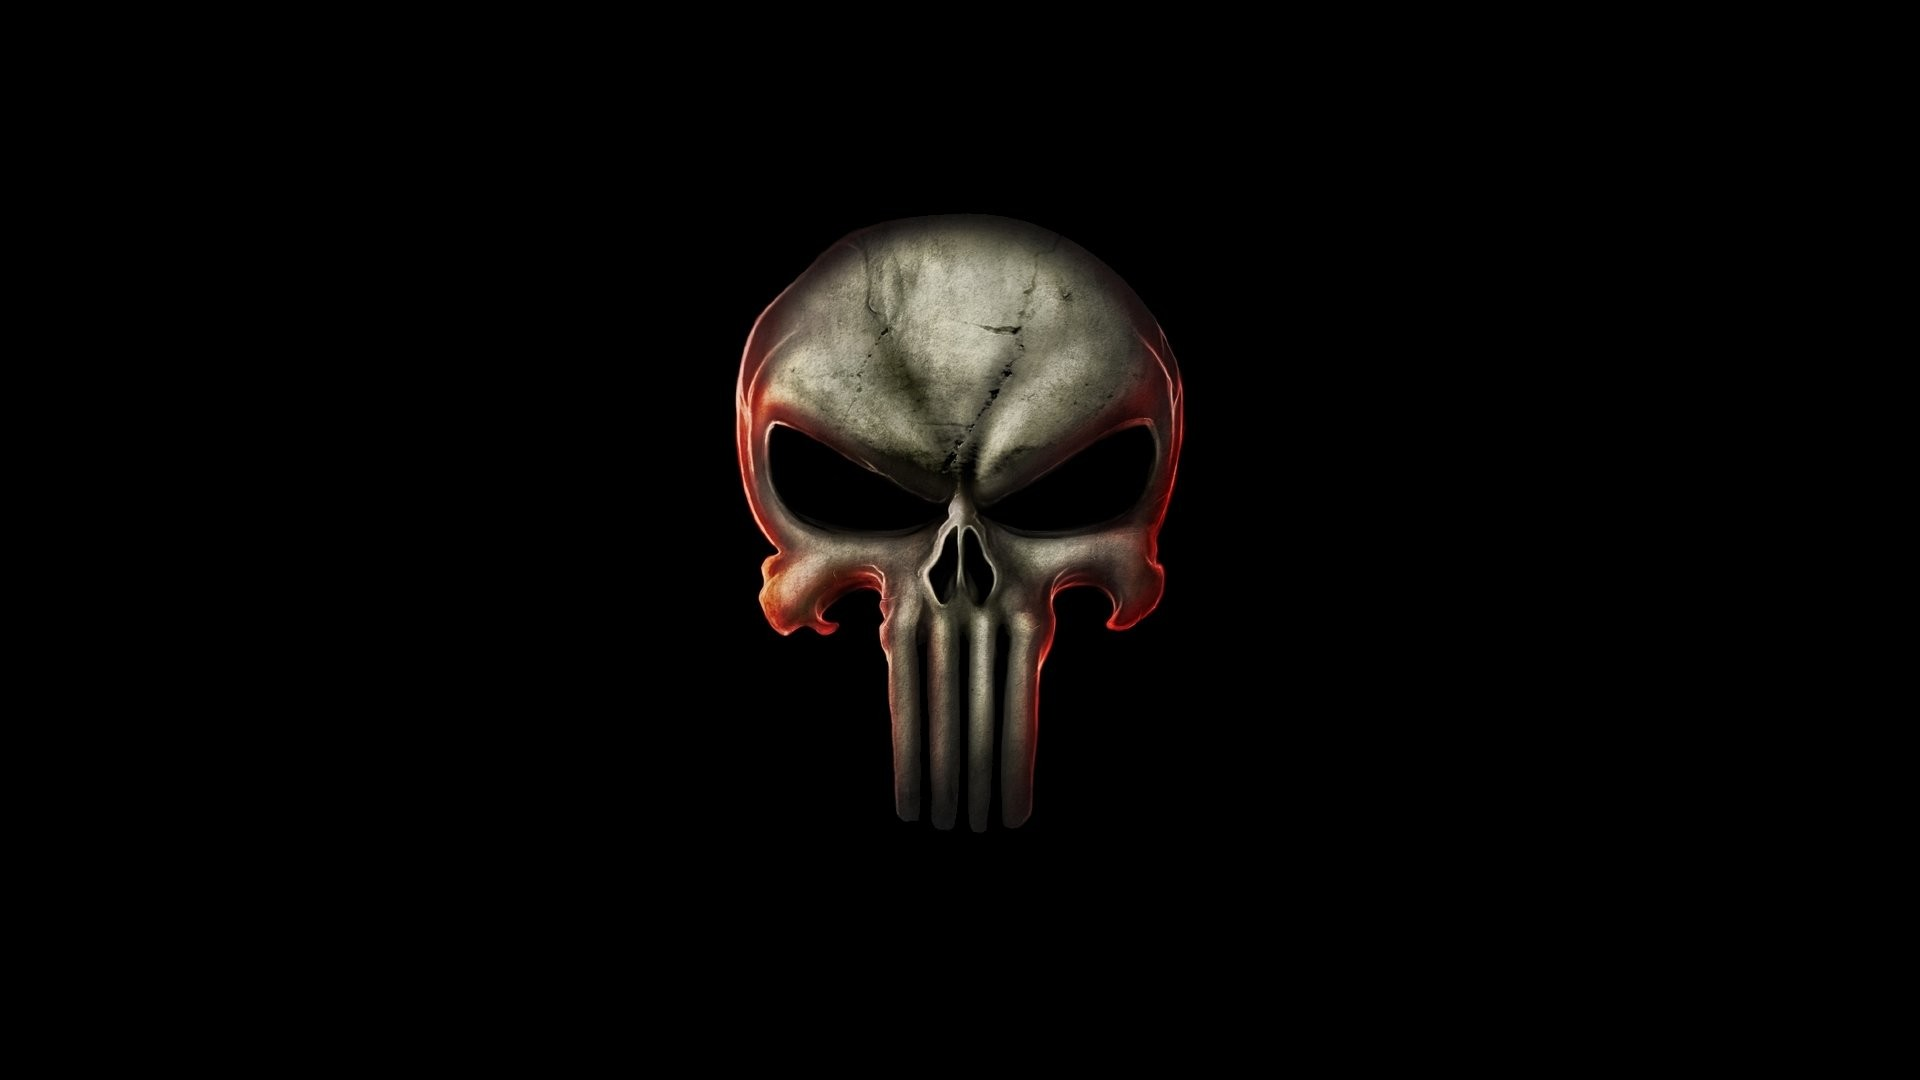 1920x1080 The Punisher HD Wallpapers Backgrounds Wallpaper 1280×1024 Punisher  Backgrounds (37 Wallpapers) | Adorable Wallpapers | Desktop | Pinterest |  Punisher, ...